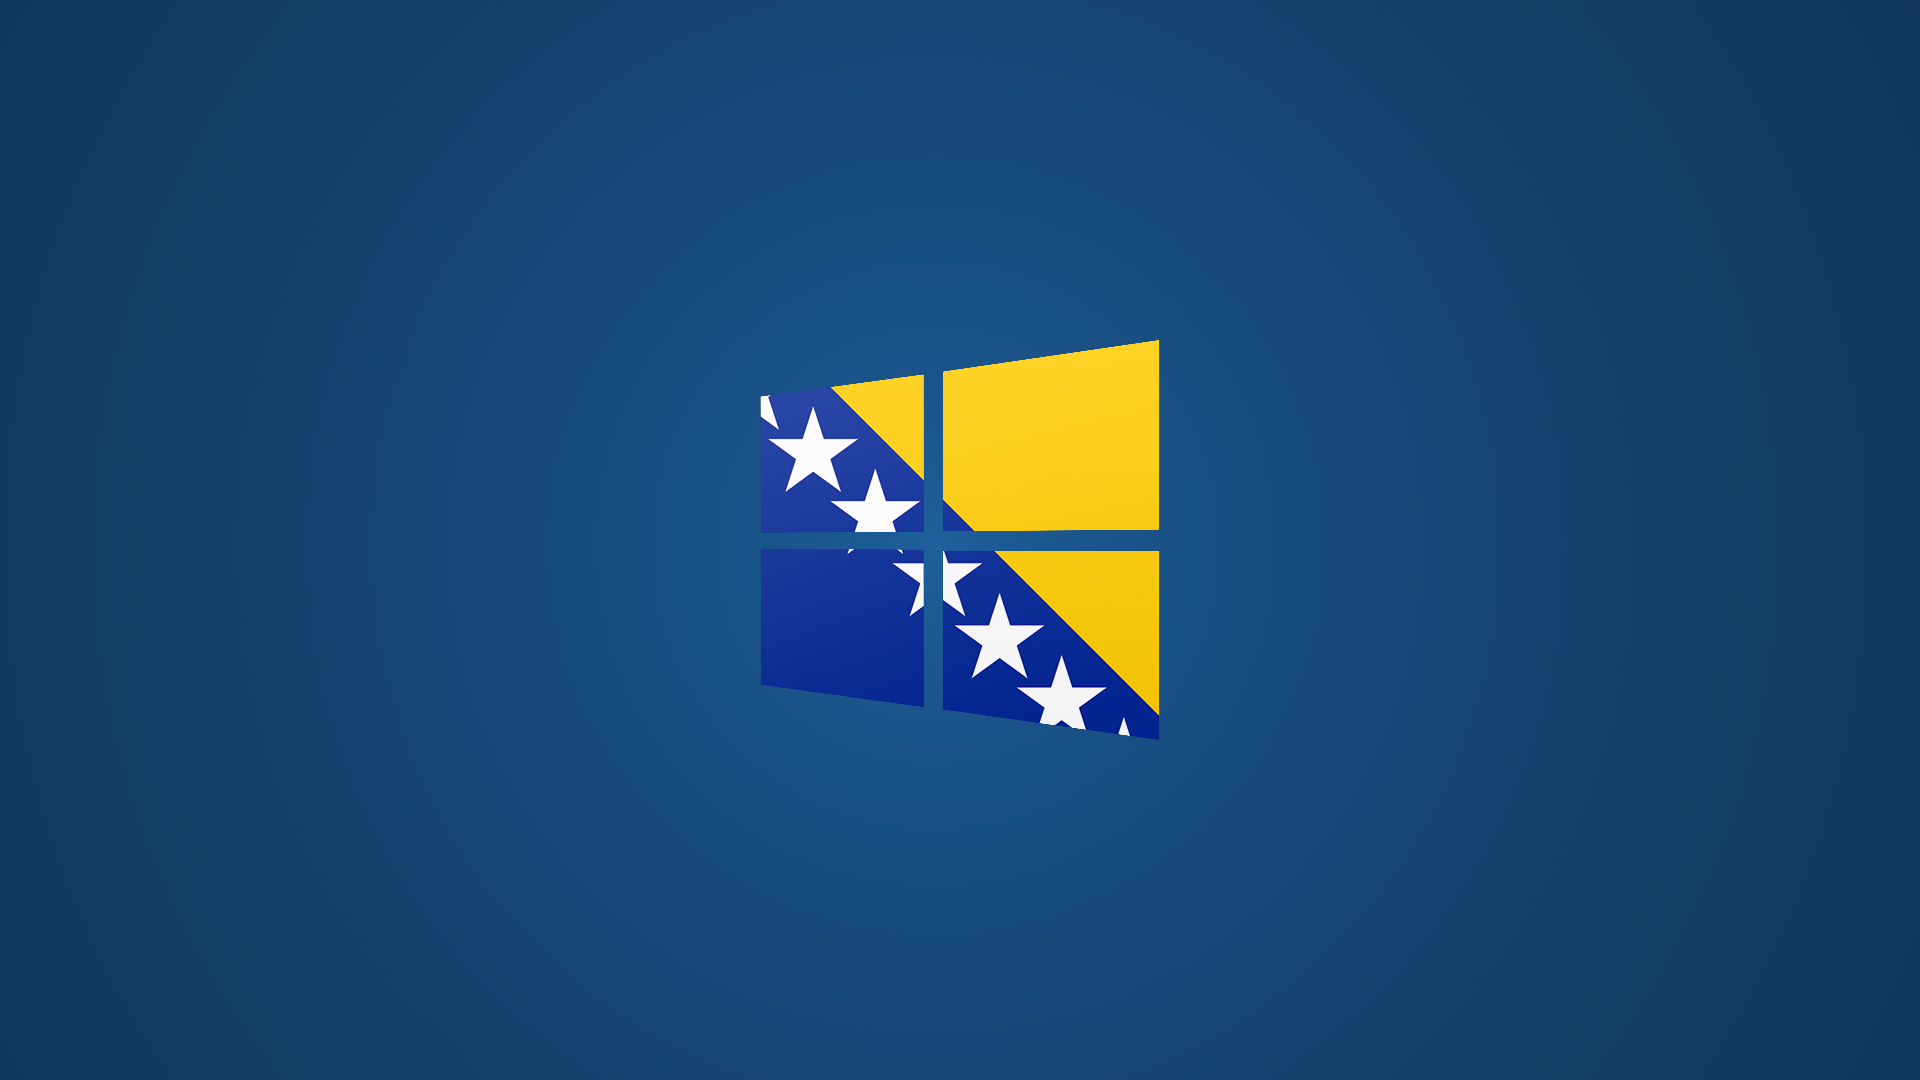 Windows 8 Bosnian Flag Logo Wallpaper Blue by Edinev 1920x1080